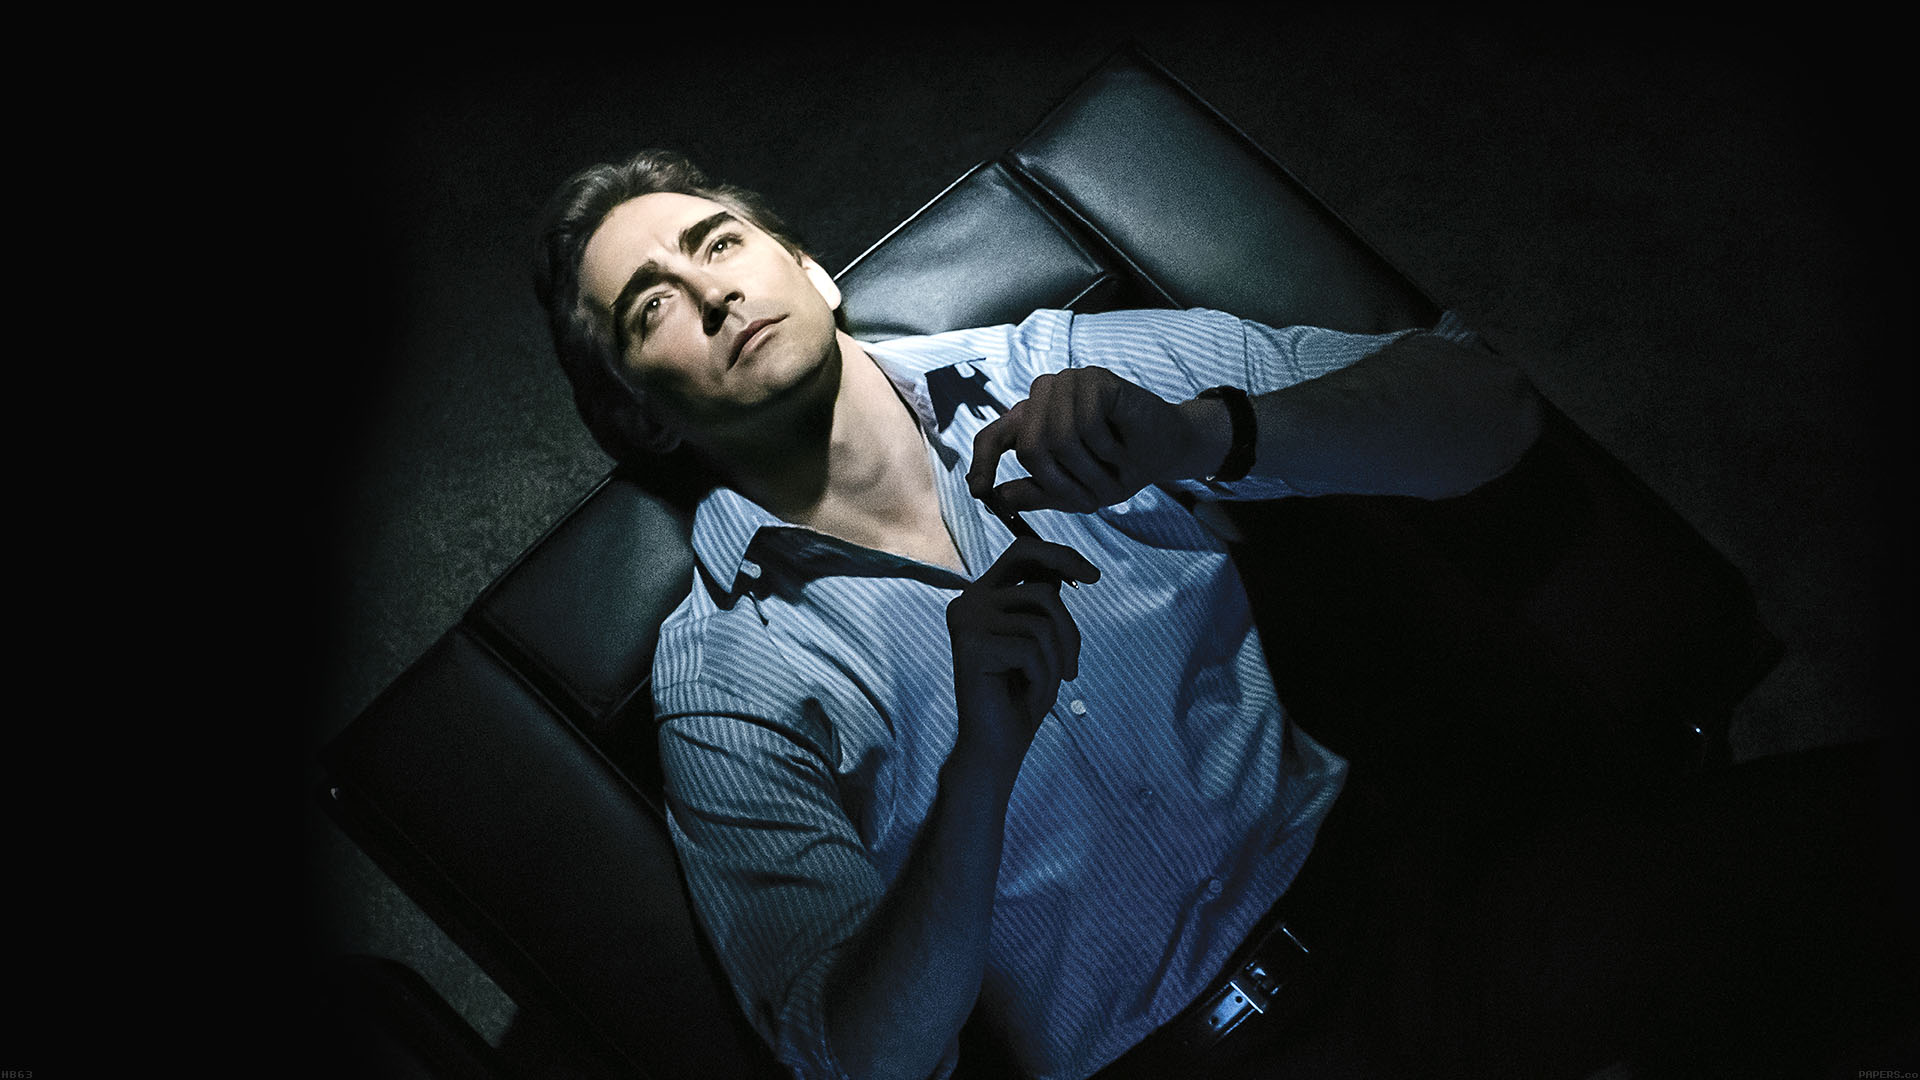 Lee Pace The Fall Wallpaper Hb63 Lee Pace Film Actor Papers Co